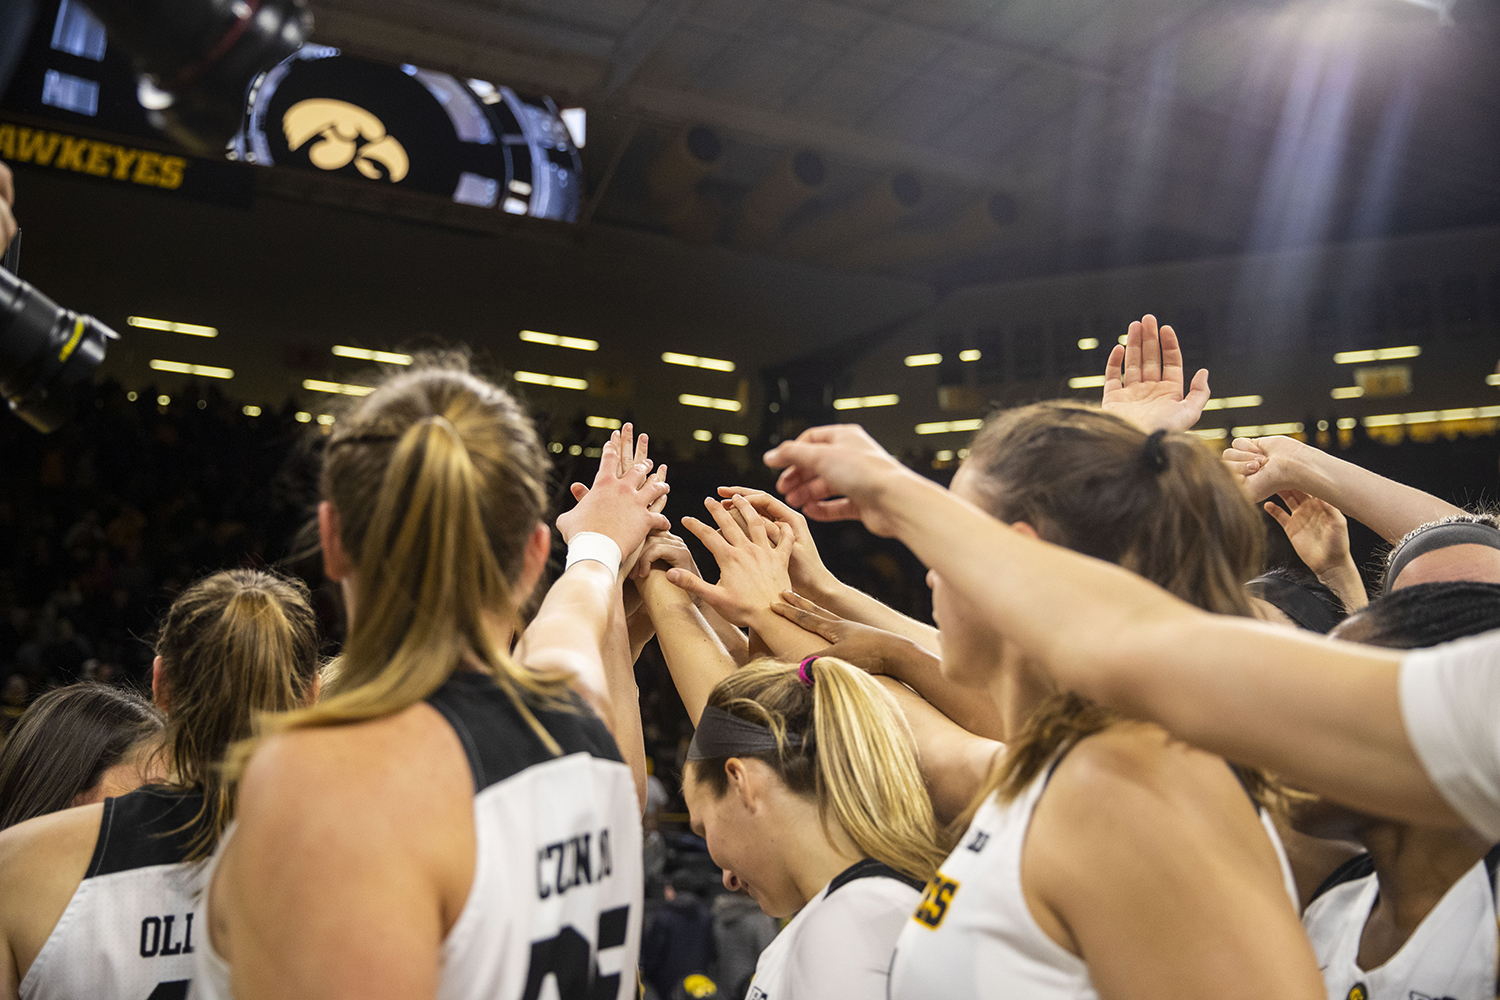 Iowa+players+meet+at+half+court+after+the+Iowa%2FIllinois+women%27s+basketball+game+at+Carver-Hawkeye+Arena+on+Thursday%2C+February+14%2C+2019.+The+Hawkeyes+defeated+the+Fighting+Illini%2C+88-66.+